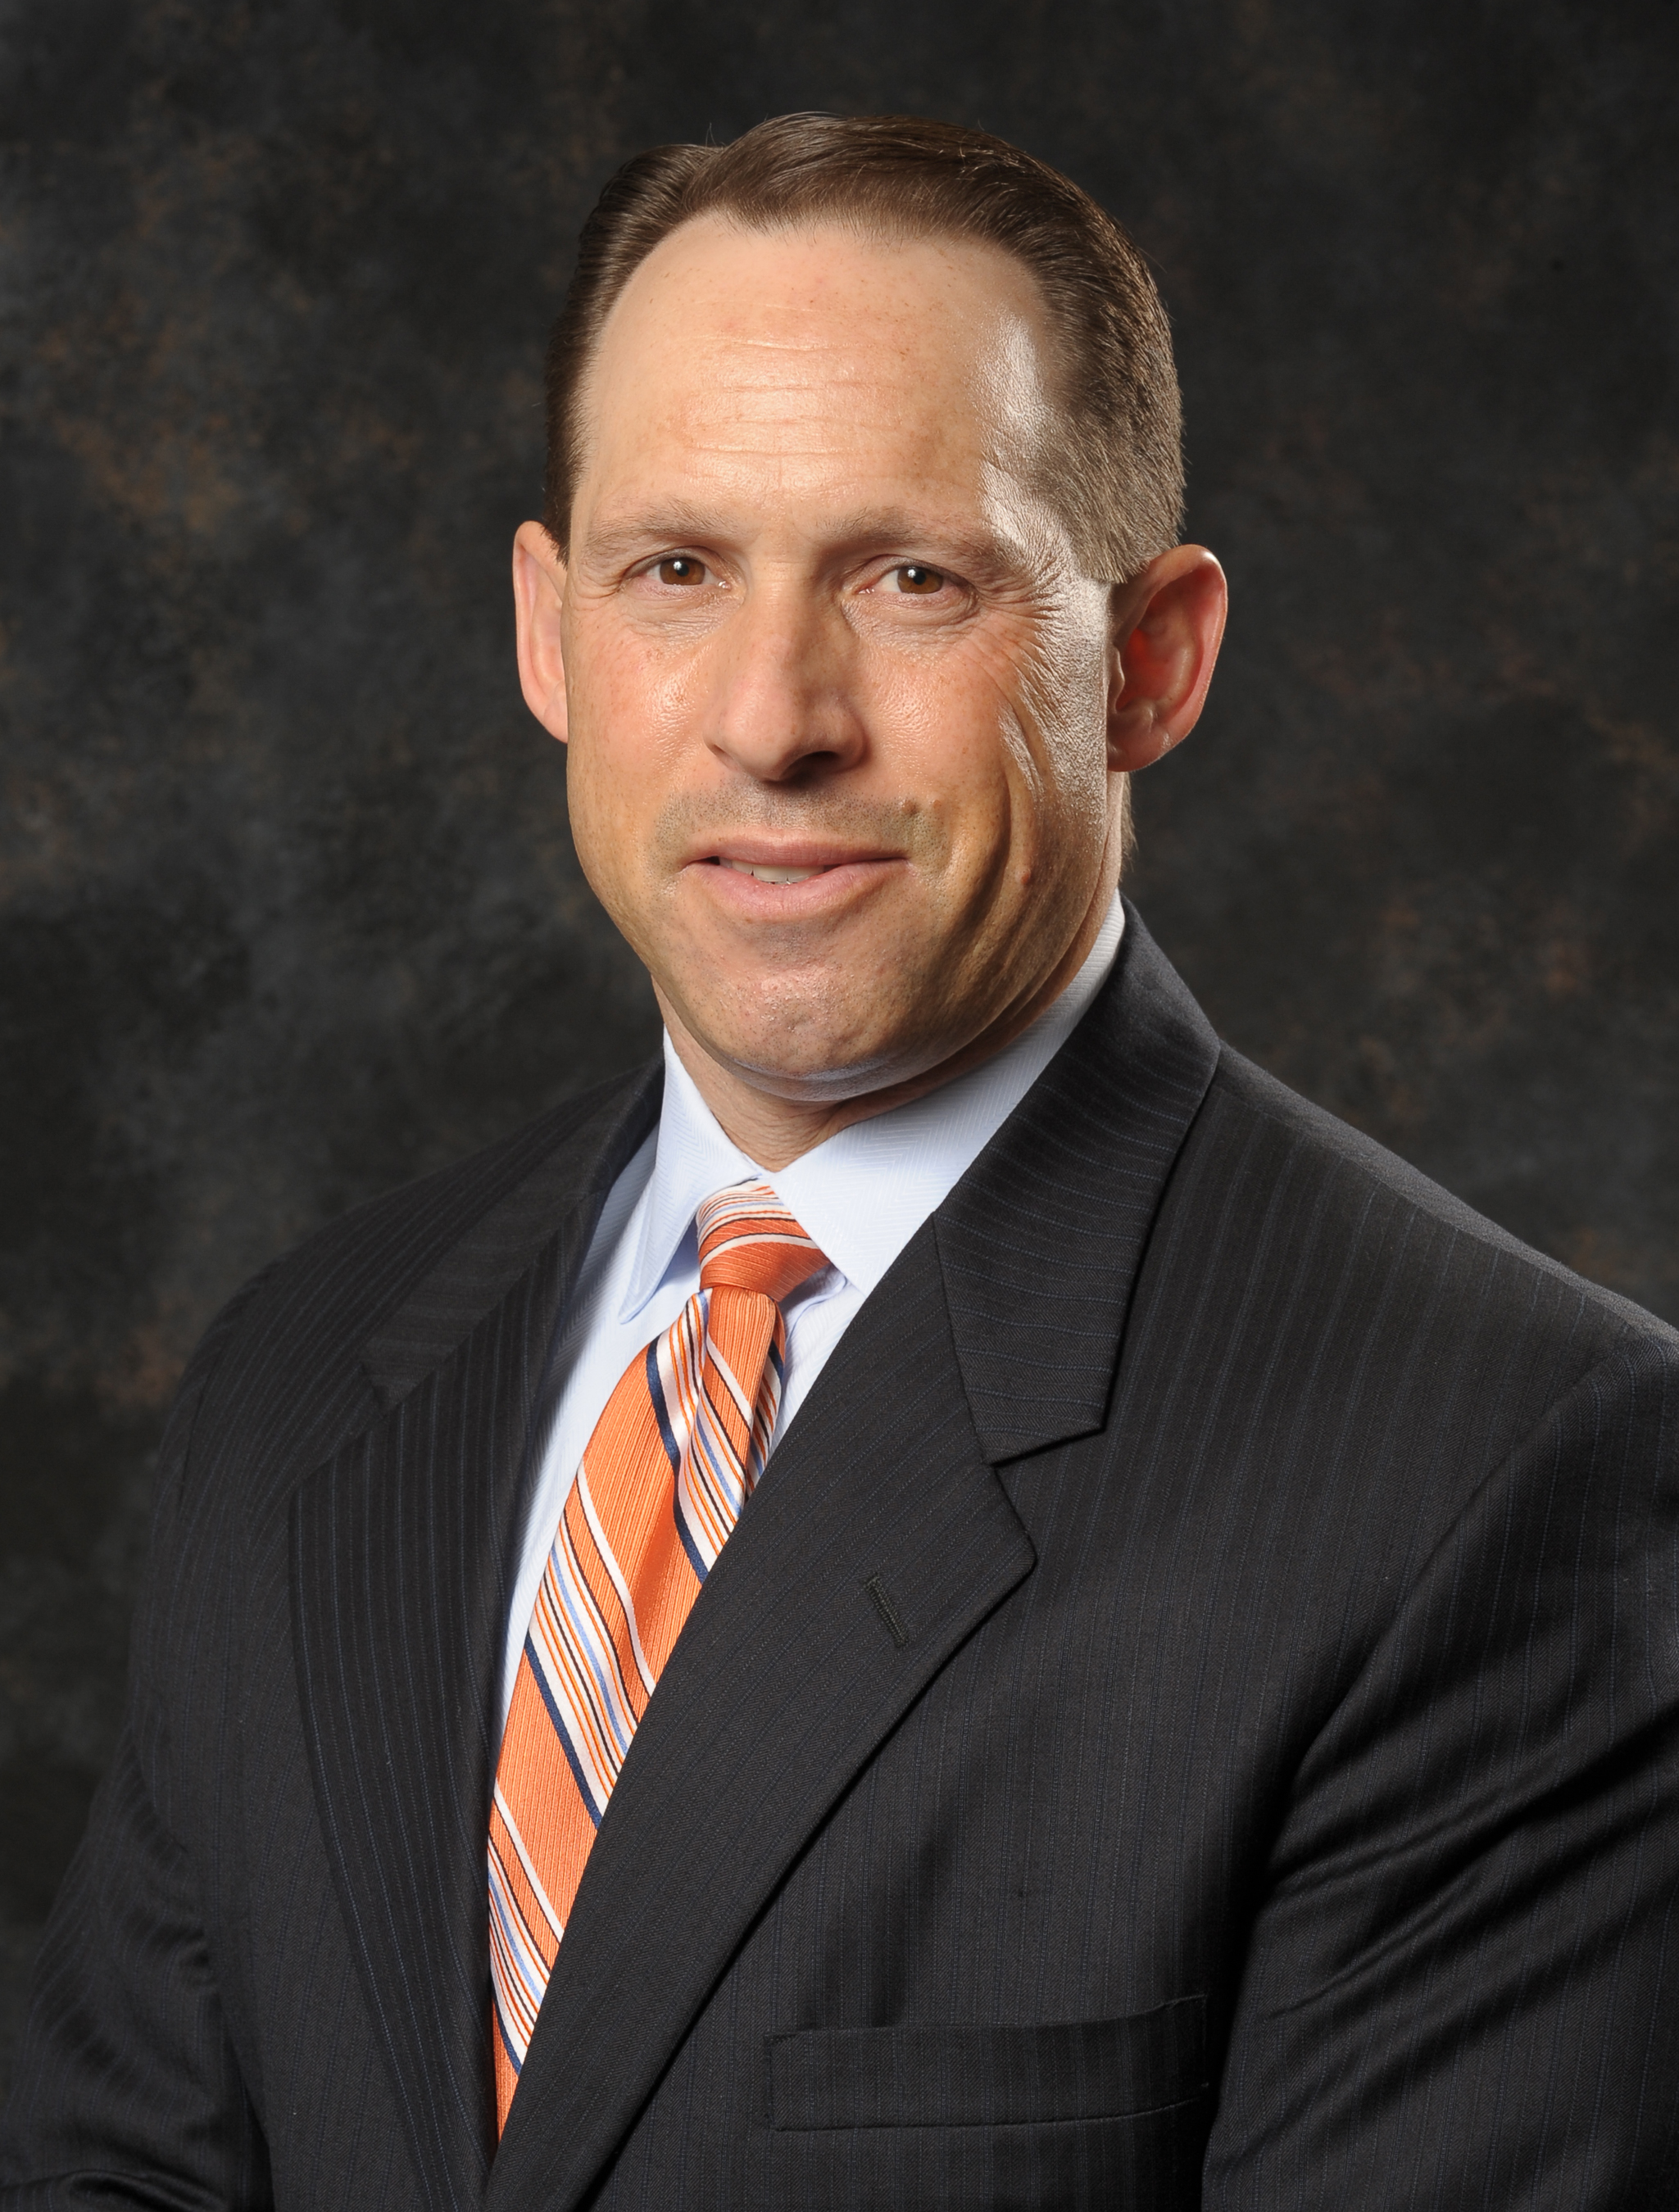 Glenn Lurie, president and CEO of AT&T Mobility